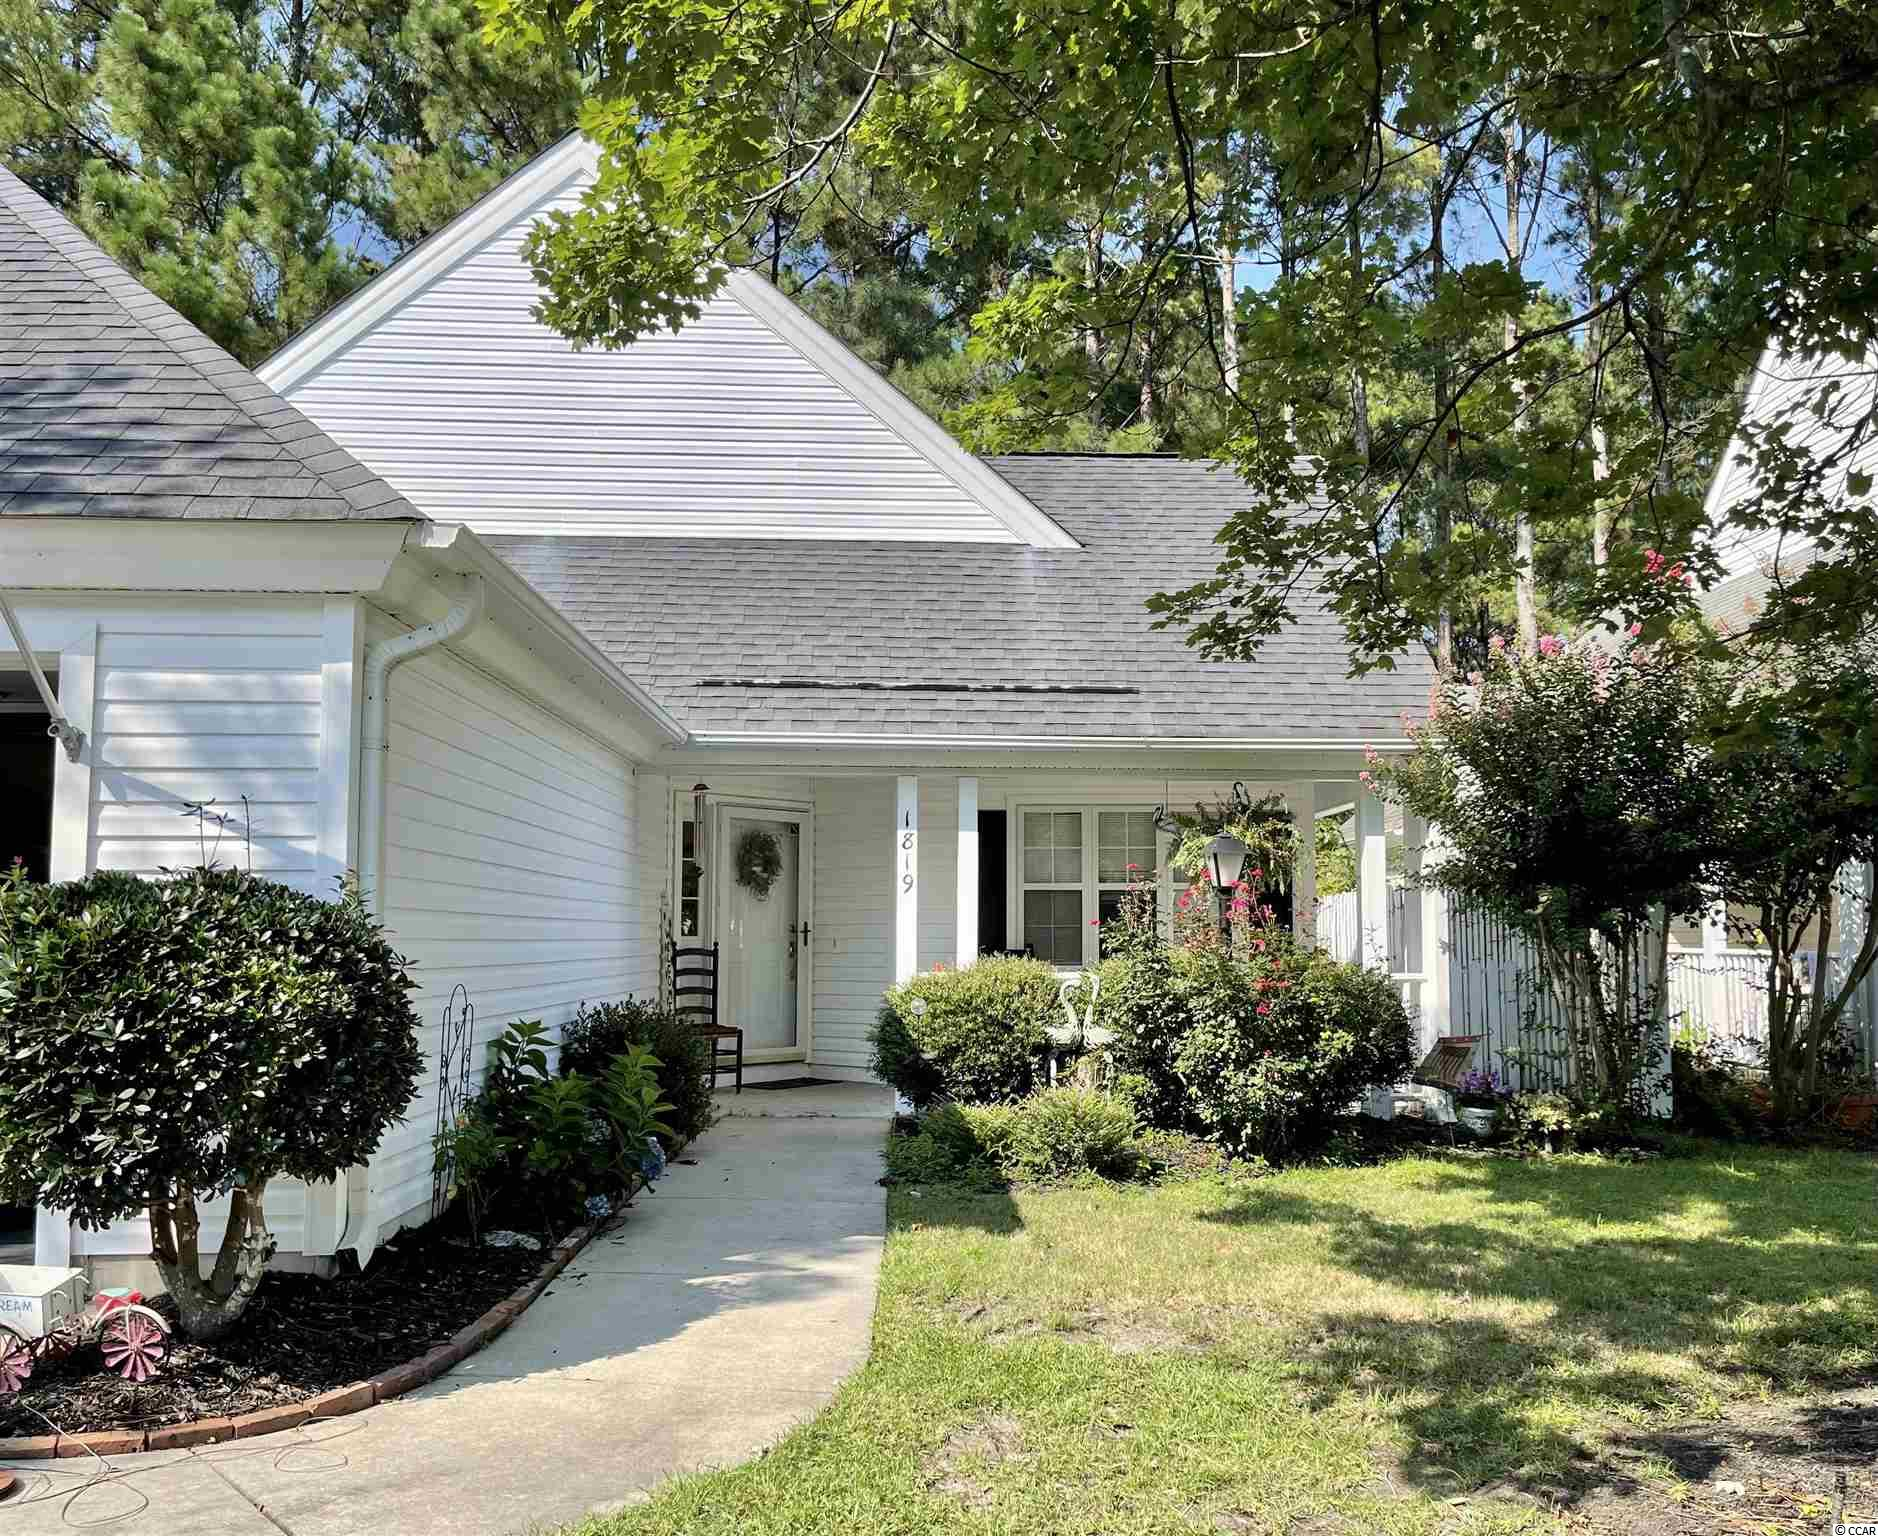 Welcome home to Prestwick Village! You will find a bright and open floor plan for entertaining in this 3 bedroom/2 bathroom home. The kitchen offers plenty of cabinets, a large island and Corian countertops. The split bedroom floor plan provides plenty of privacy for the master suite. Directly off the living room is a screened in porch and an outside patio for relaxing. Prestwick is a beautiful, gated community with 24 hour security. HOA fees include: tennis courts, jr. Olympic size pool, a cabana, cable TV & internet, and trash pick up. The community has a Pete Dye designed golf course & additional tennis stadium available for use with a separate membership. Location provides easy access to the beach, restaurants, and shopping.